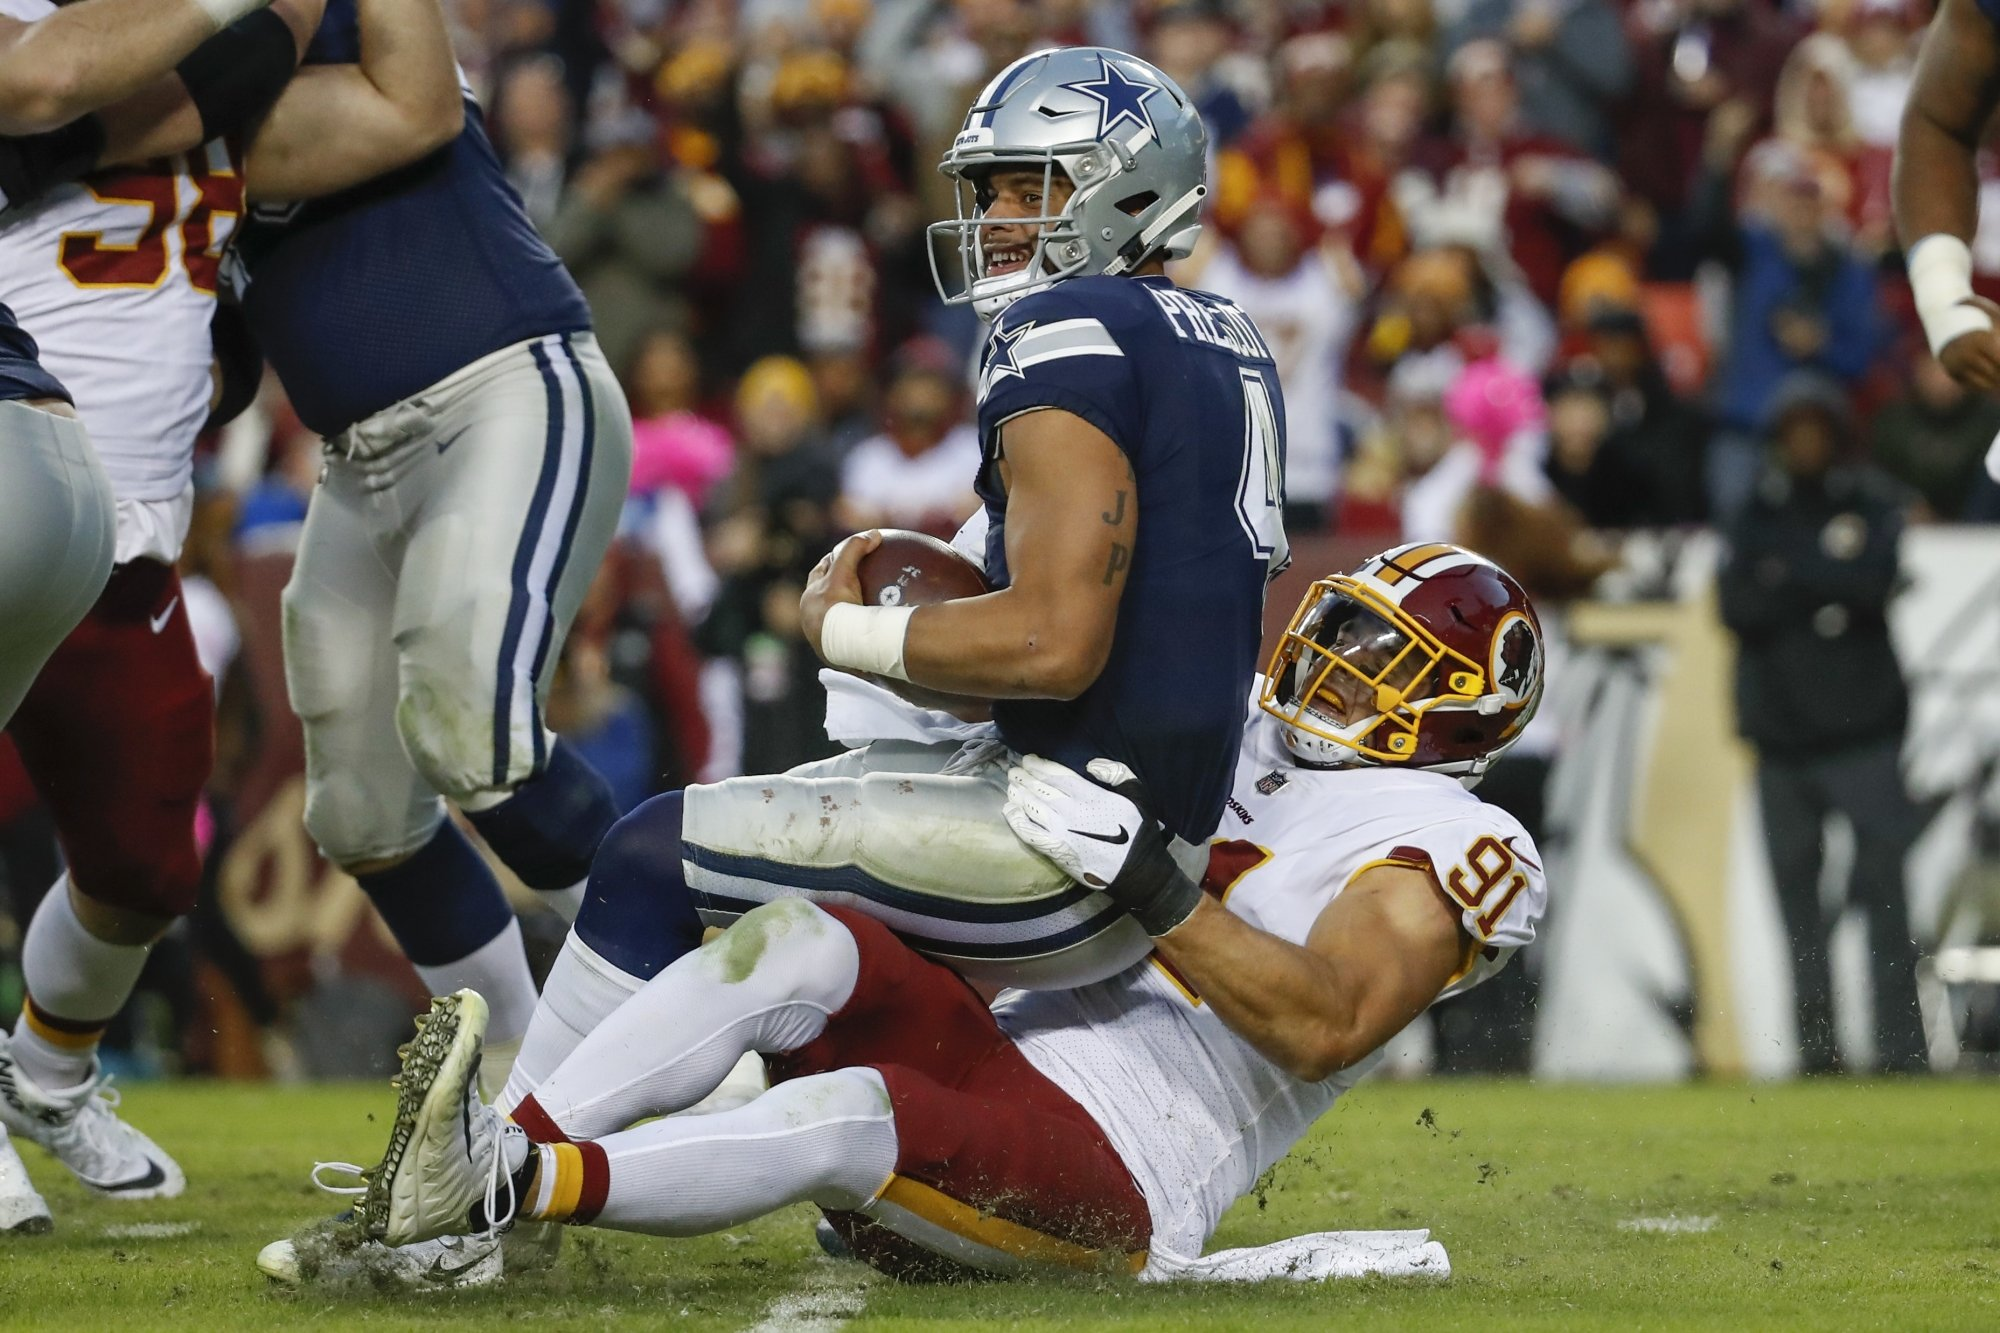 Star-staff_star-blog_bye-week-and-amari-arrive-after-cowboys-rally-stripped-away-by-redskins